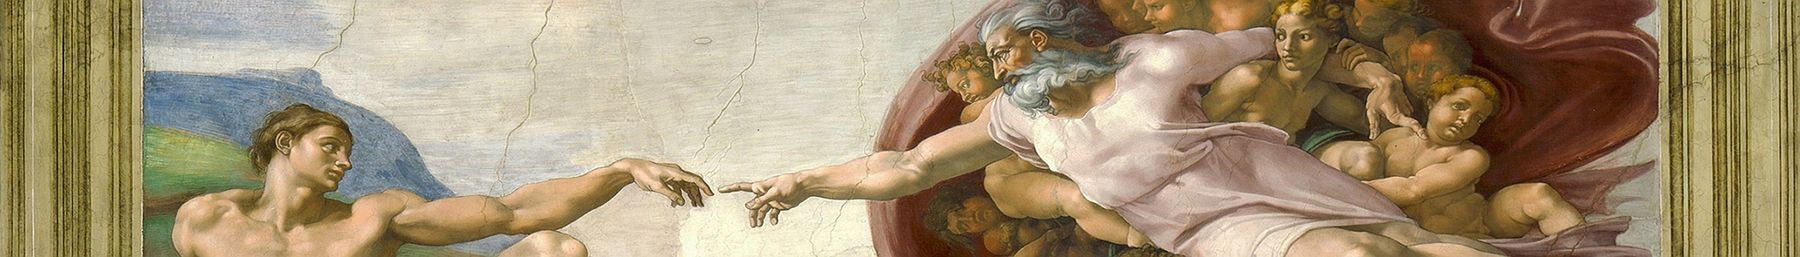 The Creation of Adam in the Sistine Chapel.